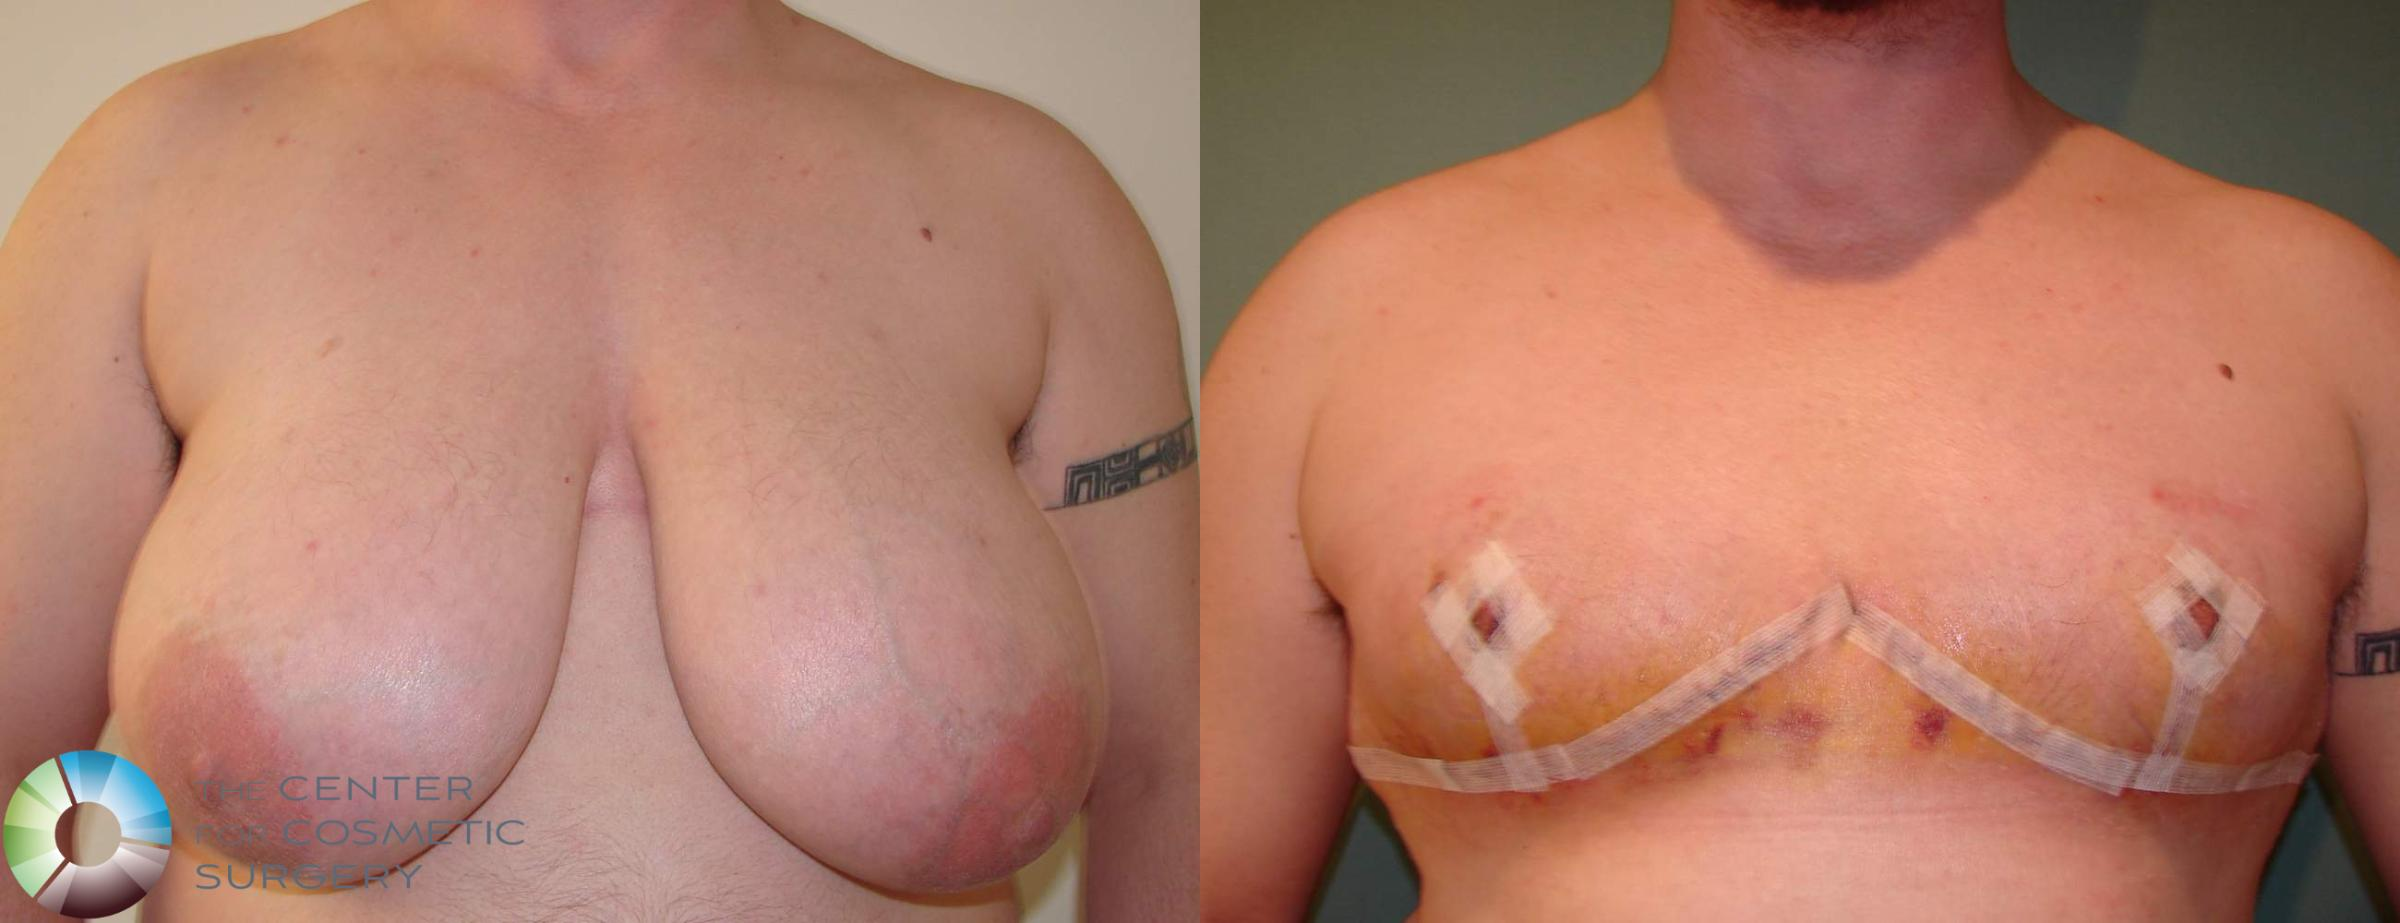 FTM Top Surgery/Chest Masculinization Case 611 Before & After View #1 | Golden, CO | The Center for Cosmetic Surgery